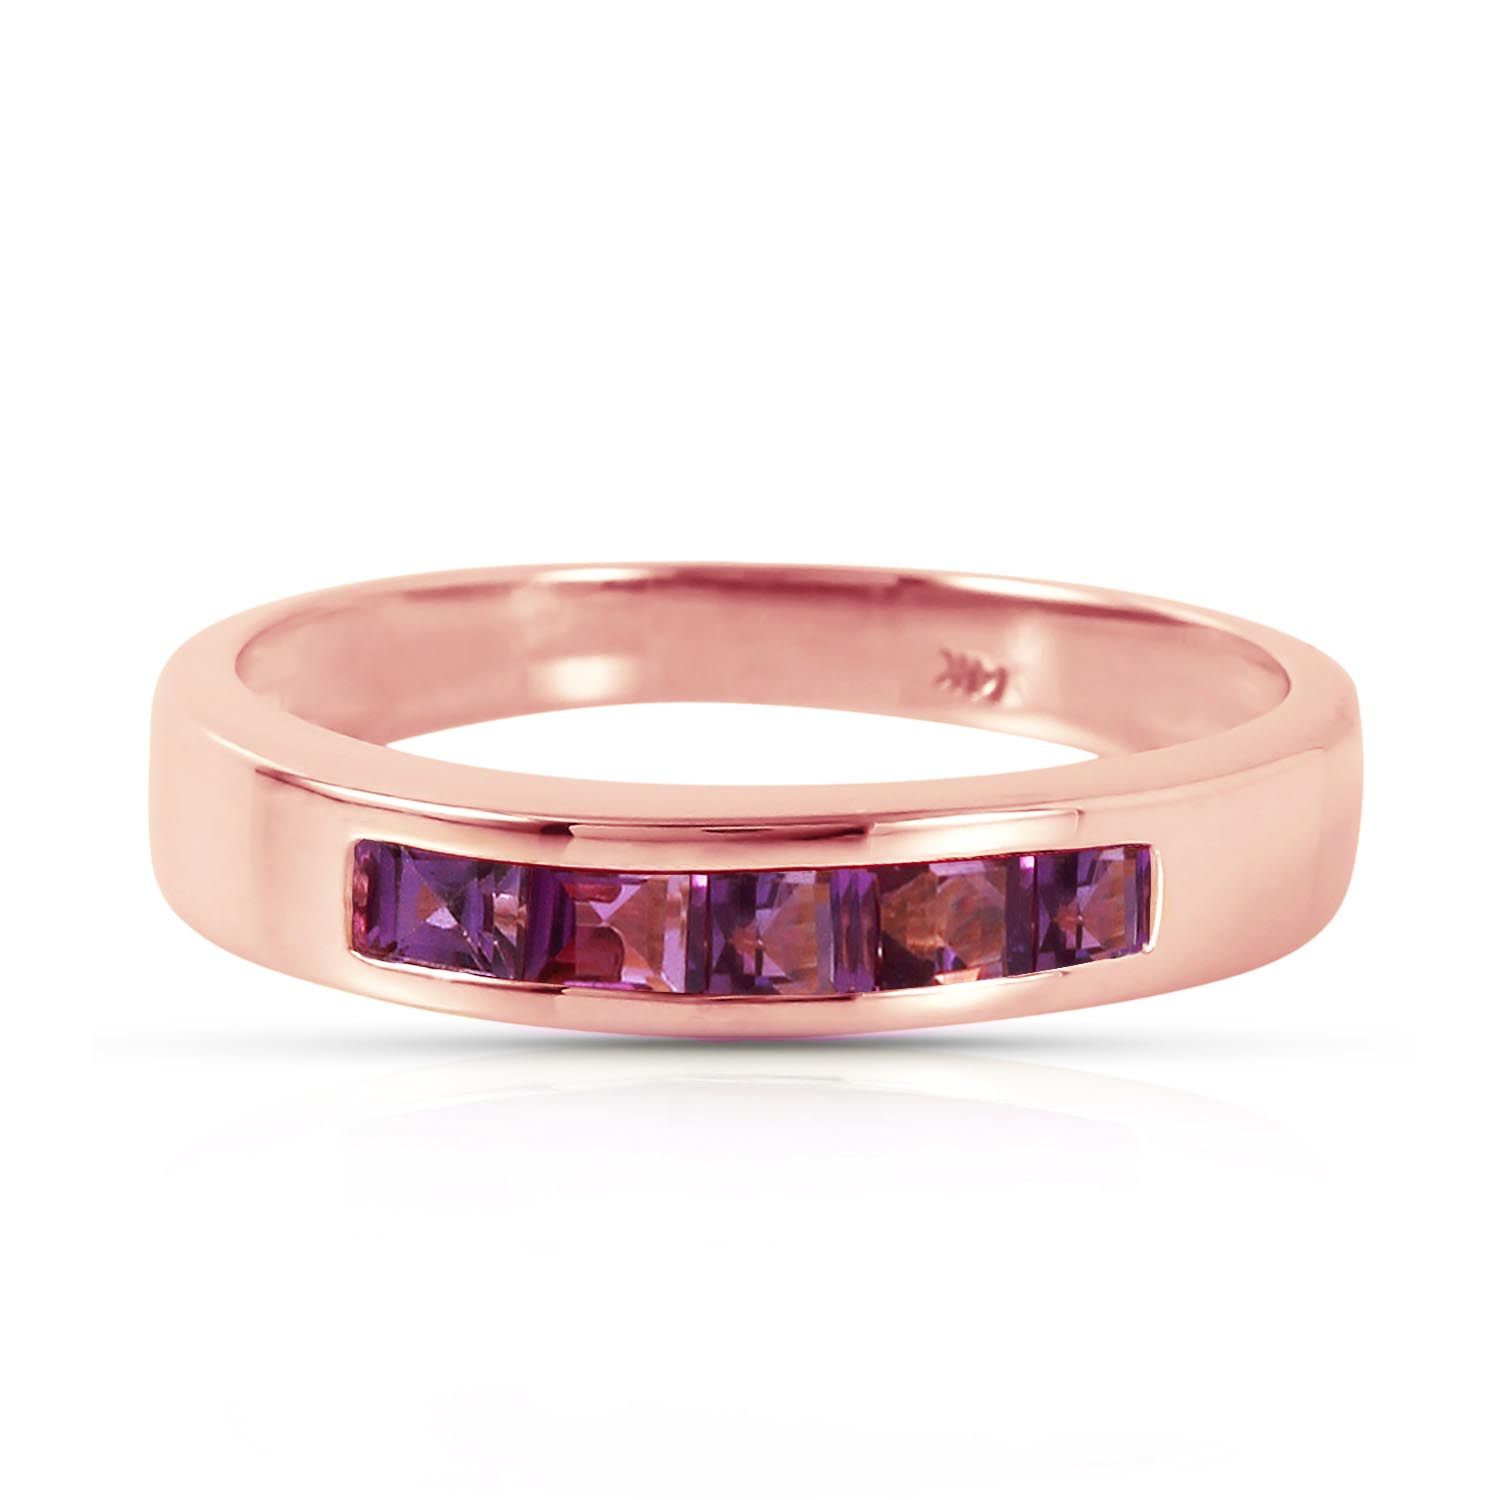 Princess Cut Amethyst Ring 0.6ctw in 9ct Rose Gold